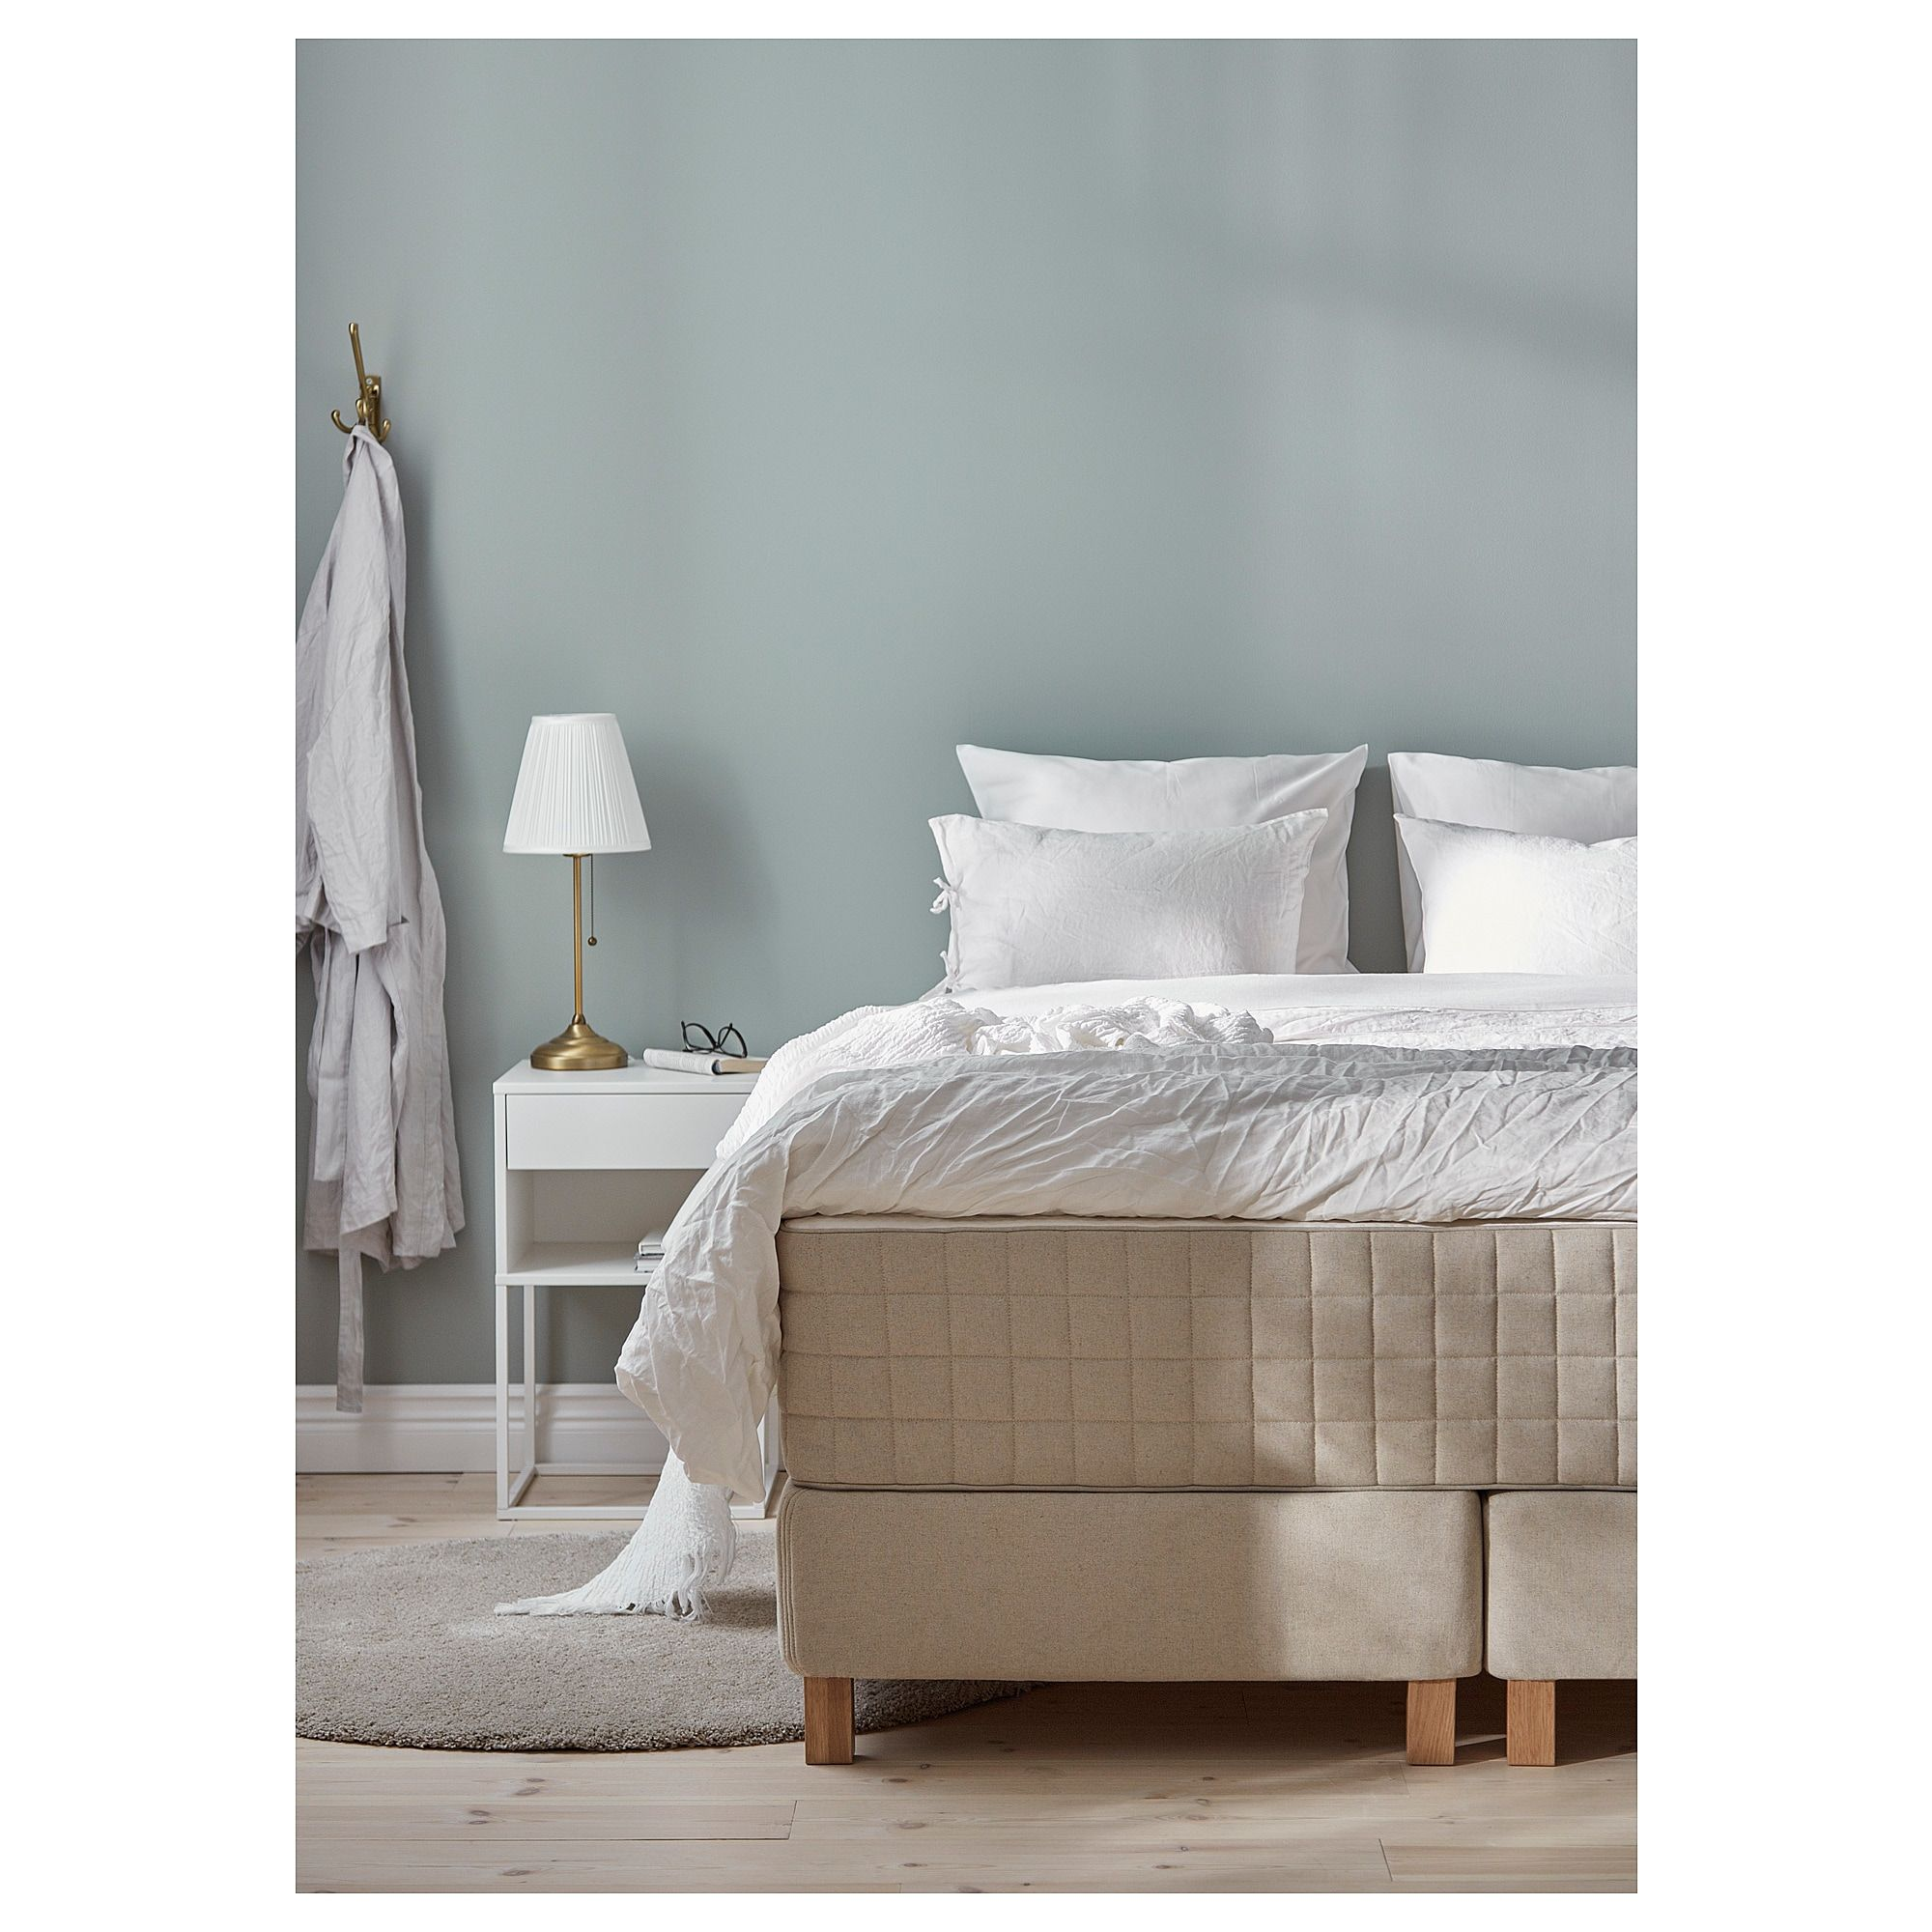 Ikea Boxspring 220 Cm Us Furniture And Home Furnishings In 2019 Ikea Bed Bed